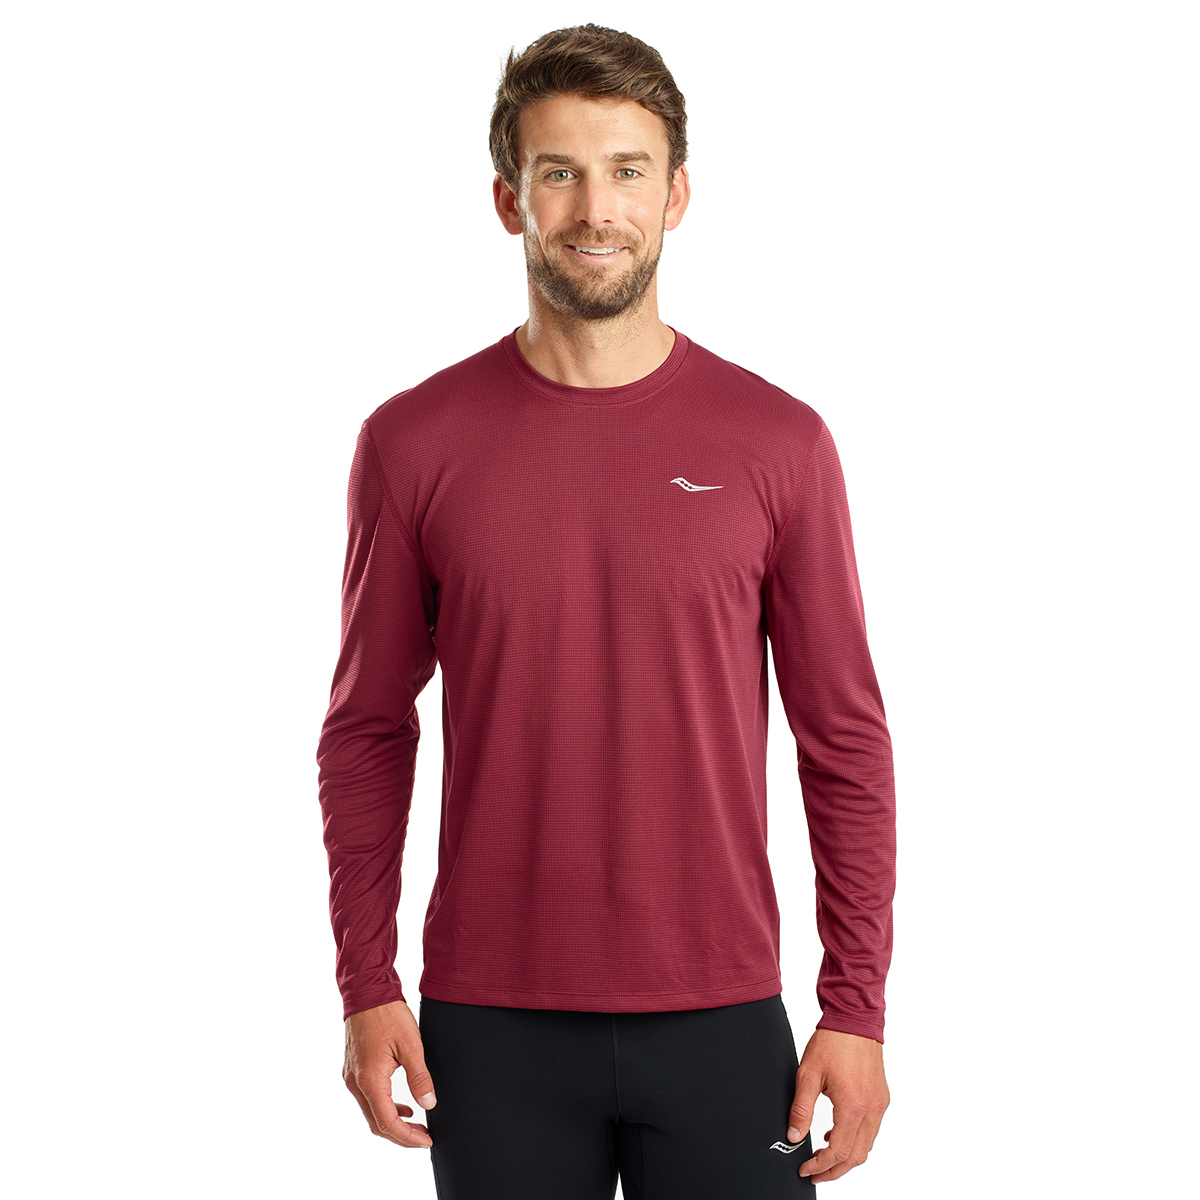 Men's Saucony Stopwatch Long Sleeve, , large, image 1